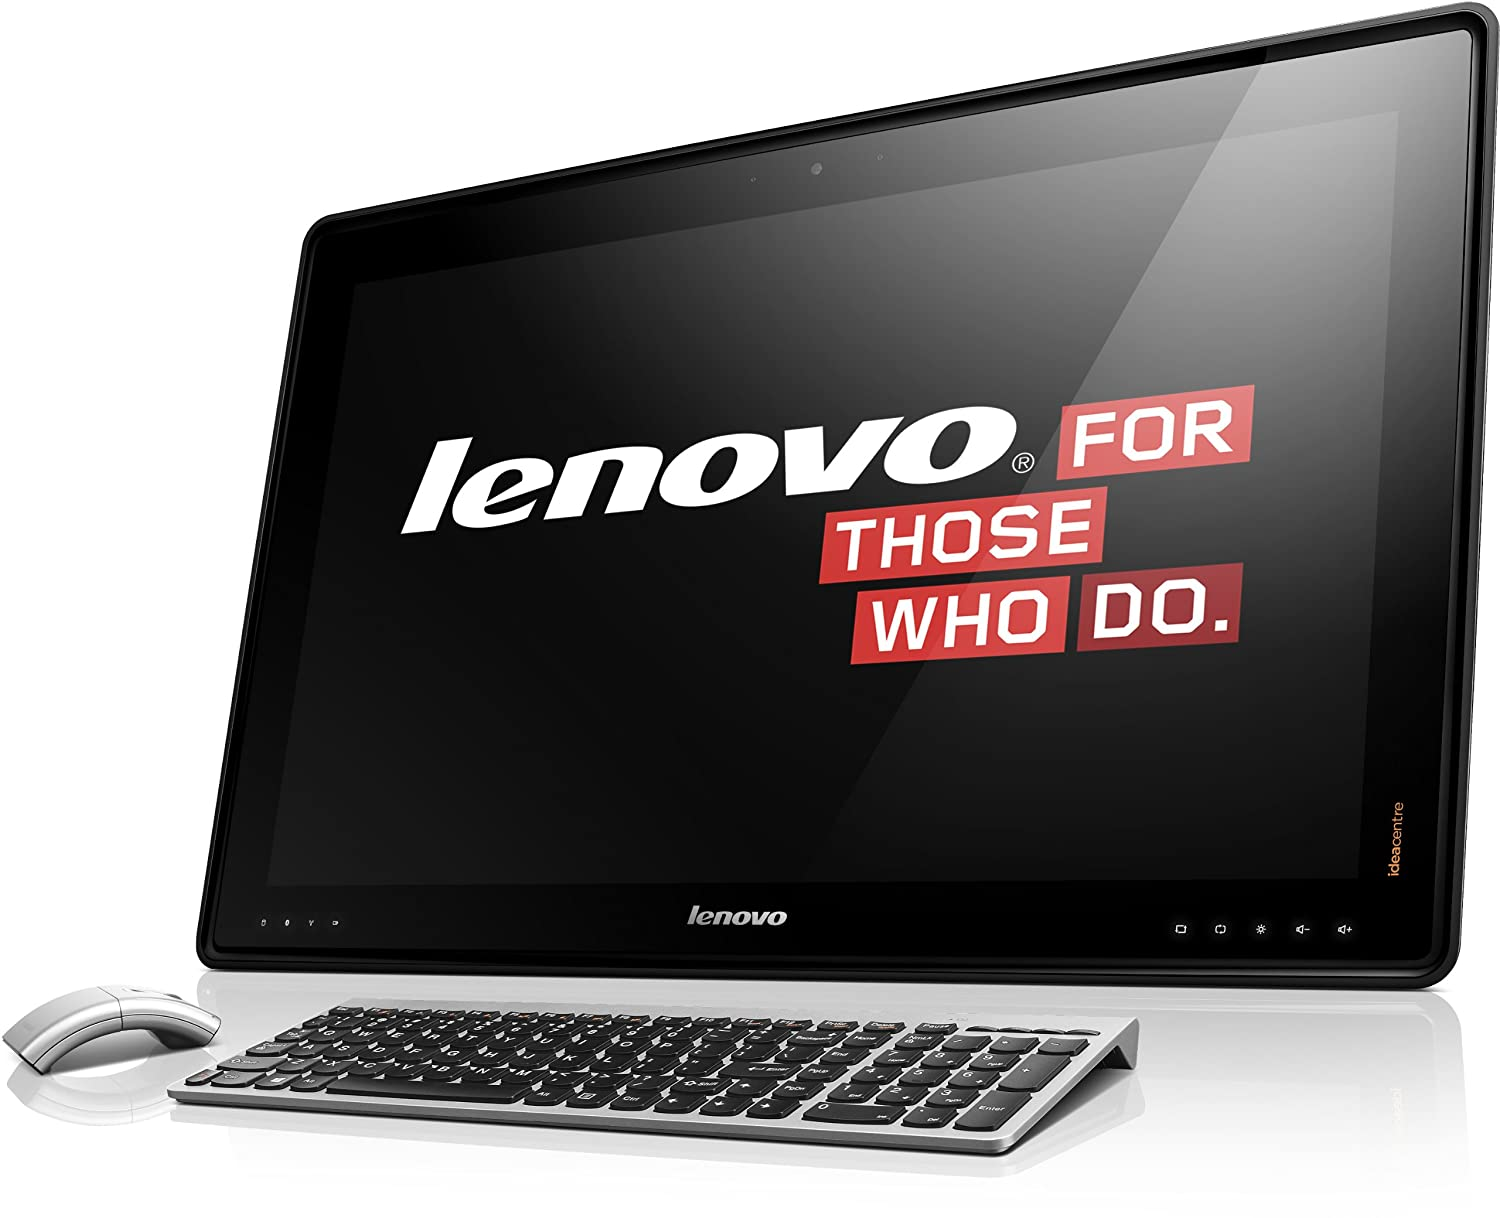 Pc bureau lenovo inspirational best informatique images on